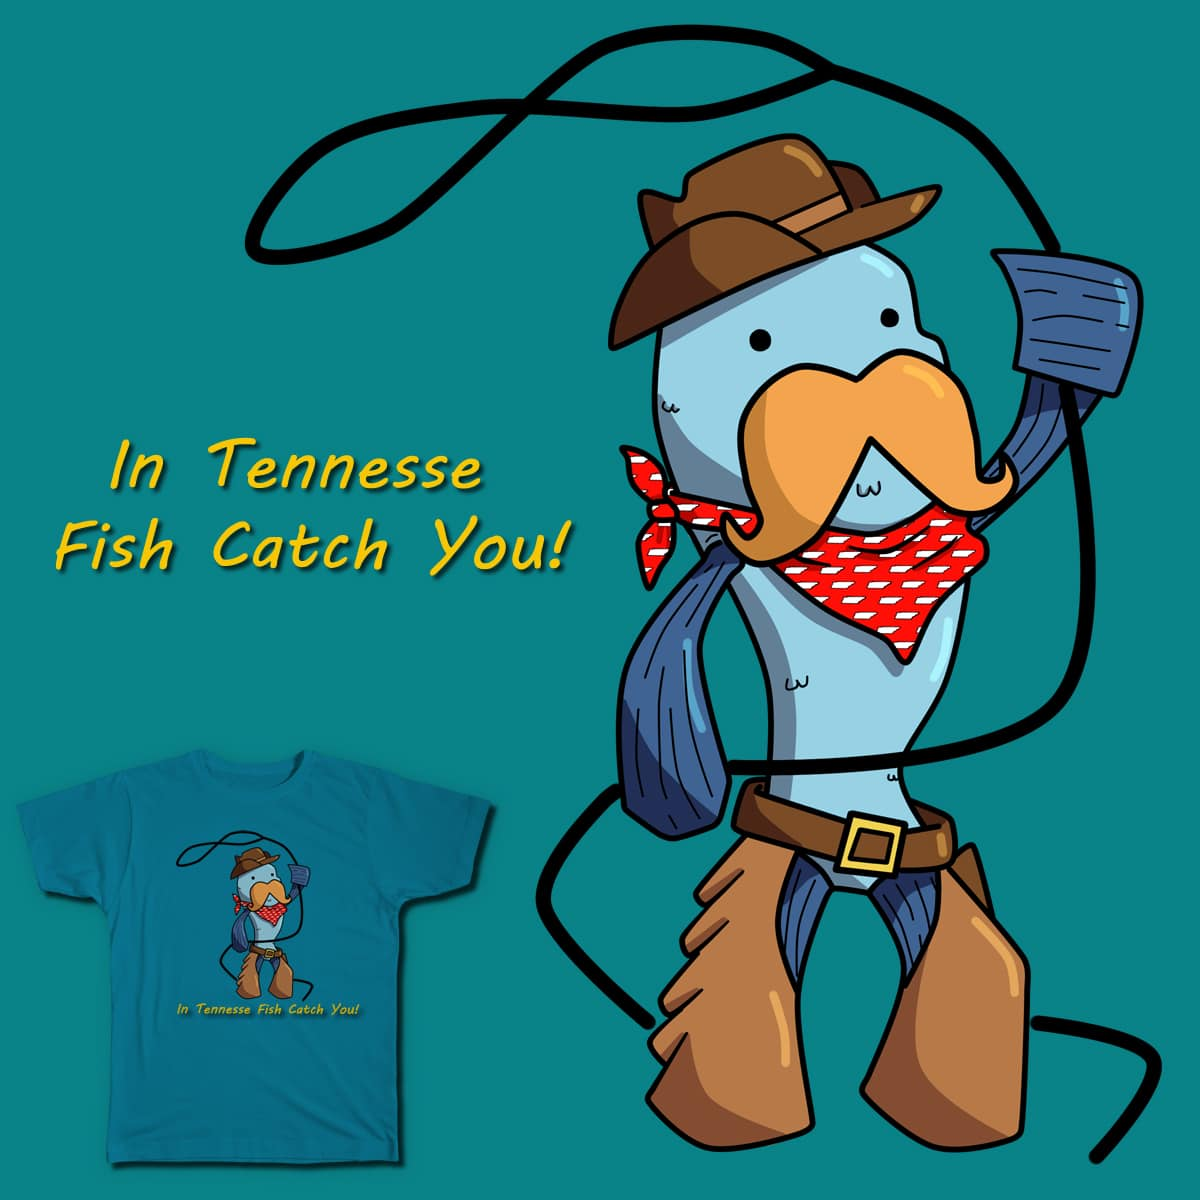 In Tennessee... by KneeCoal1 on Threadless